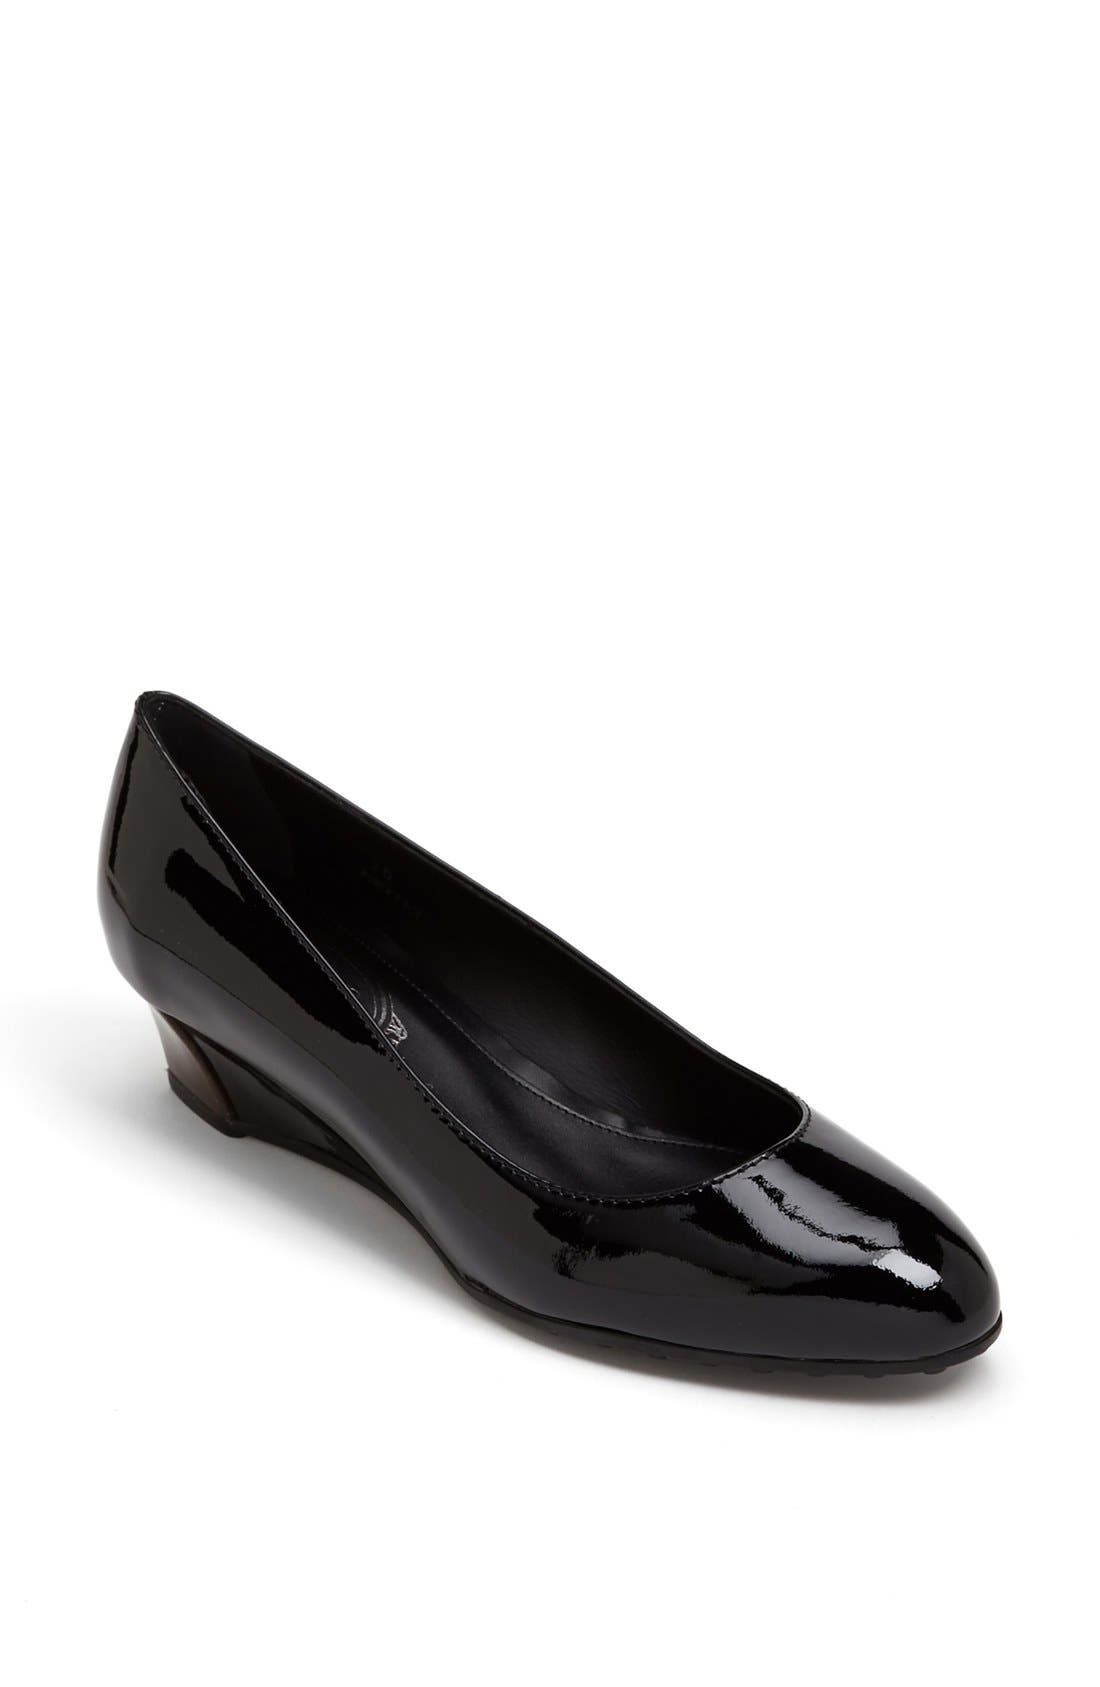 Alternate Image 1 Selected - Tod's 'Zeppa' Wedge Pump